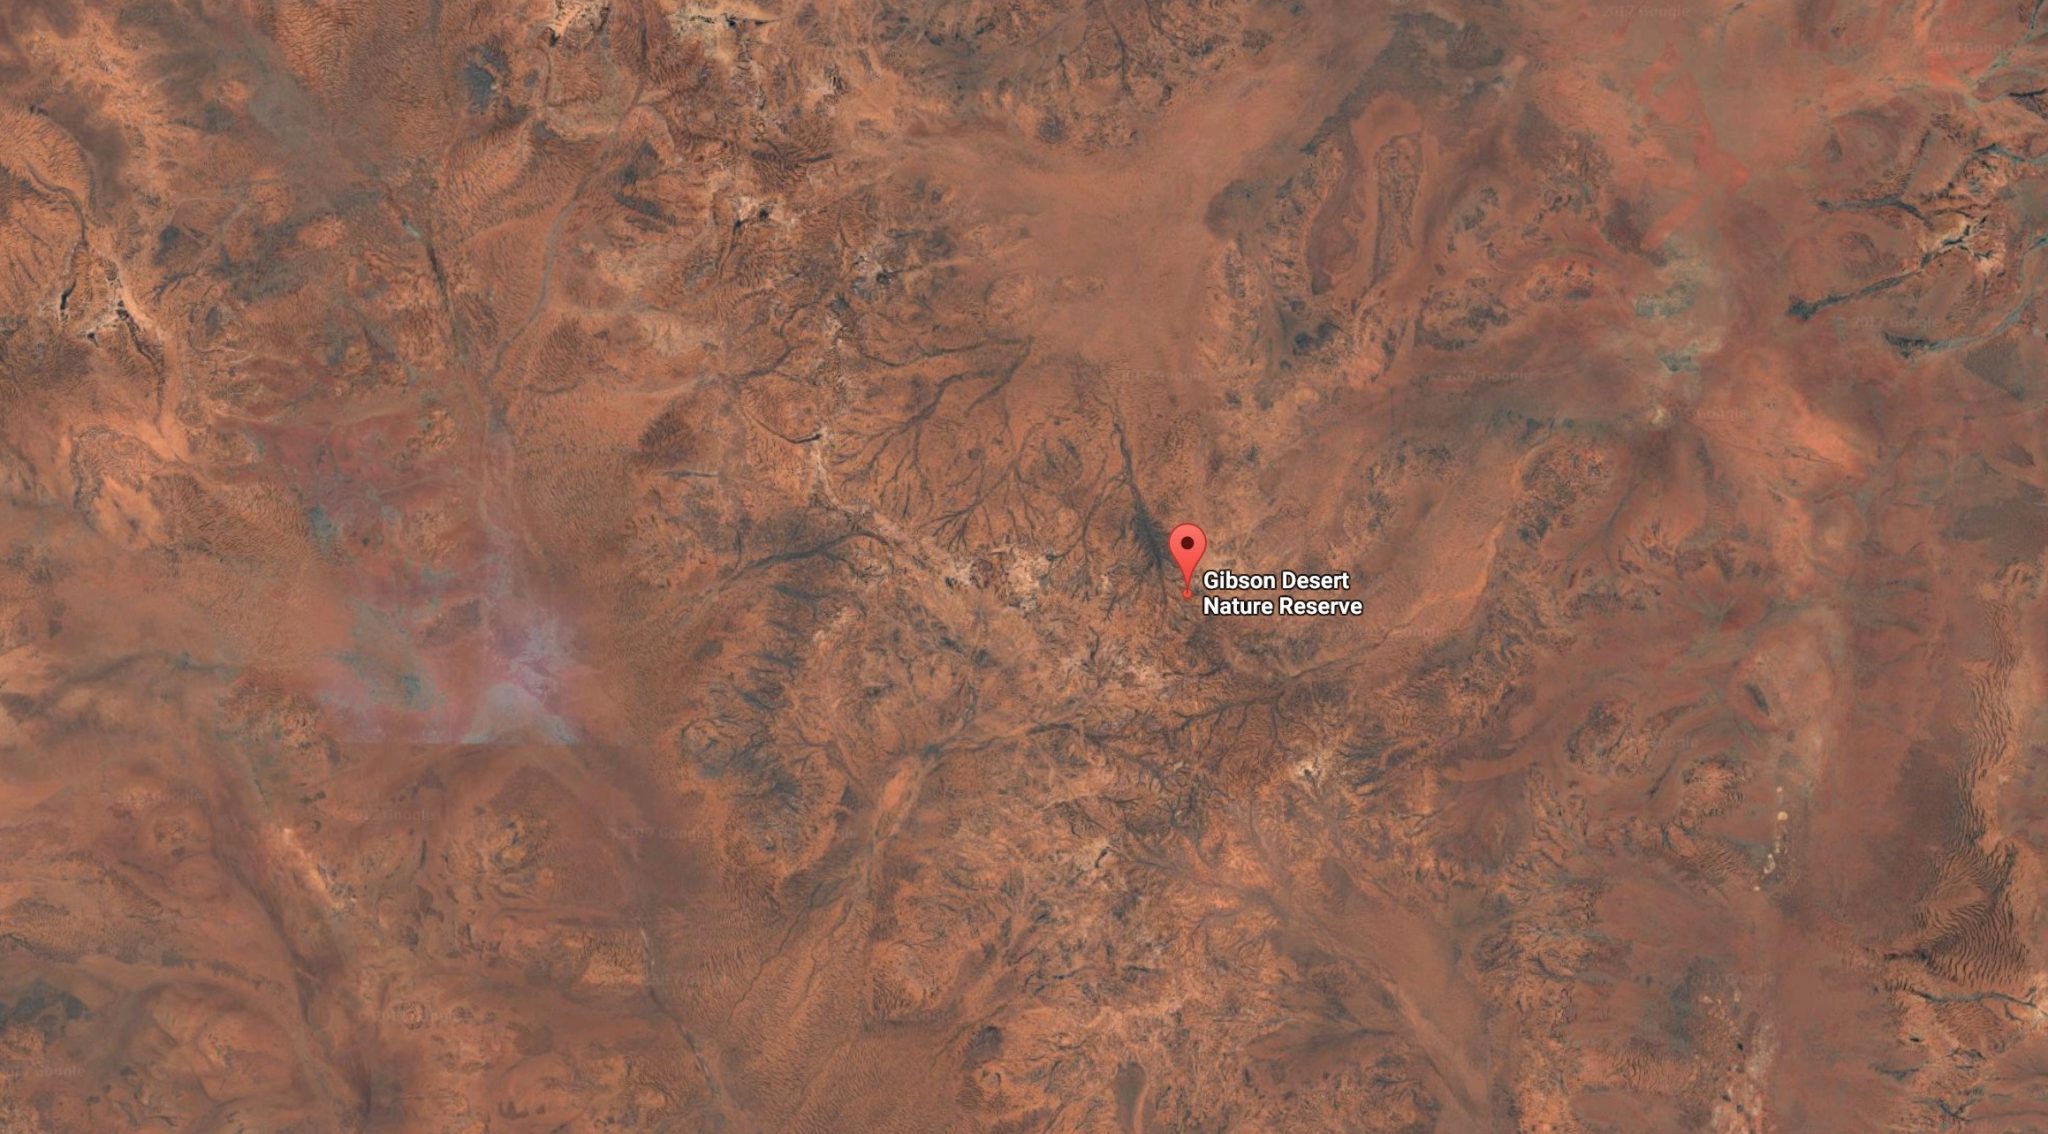 Police search for bogged 4X4 in Gibson Desert.